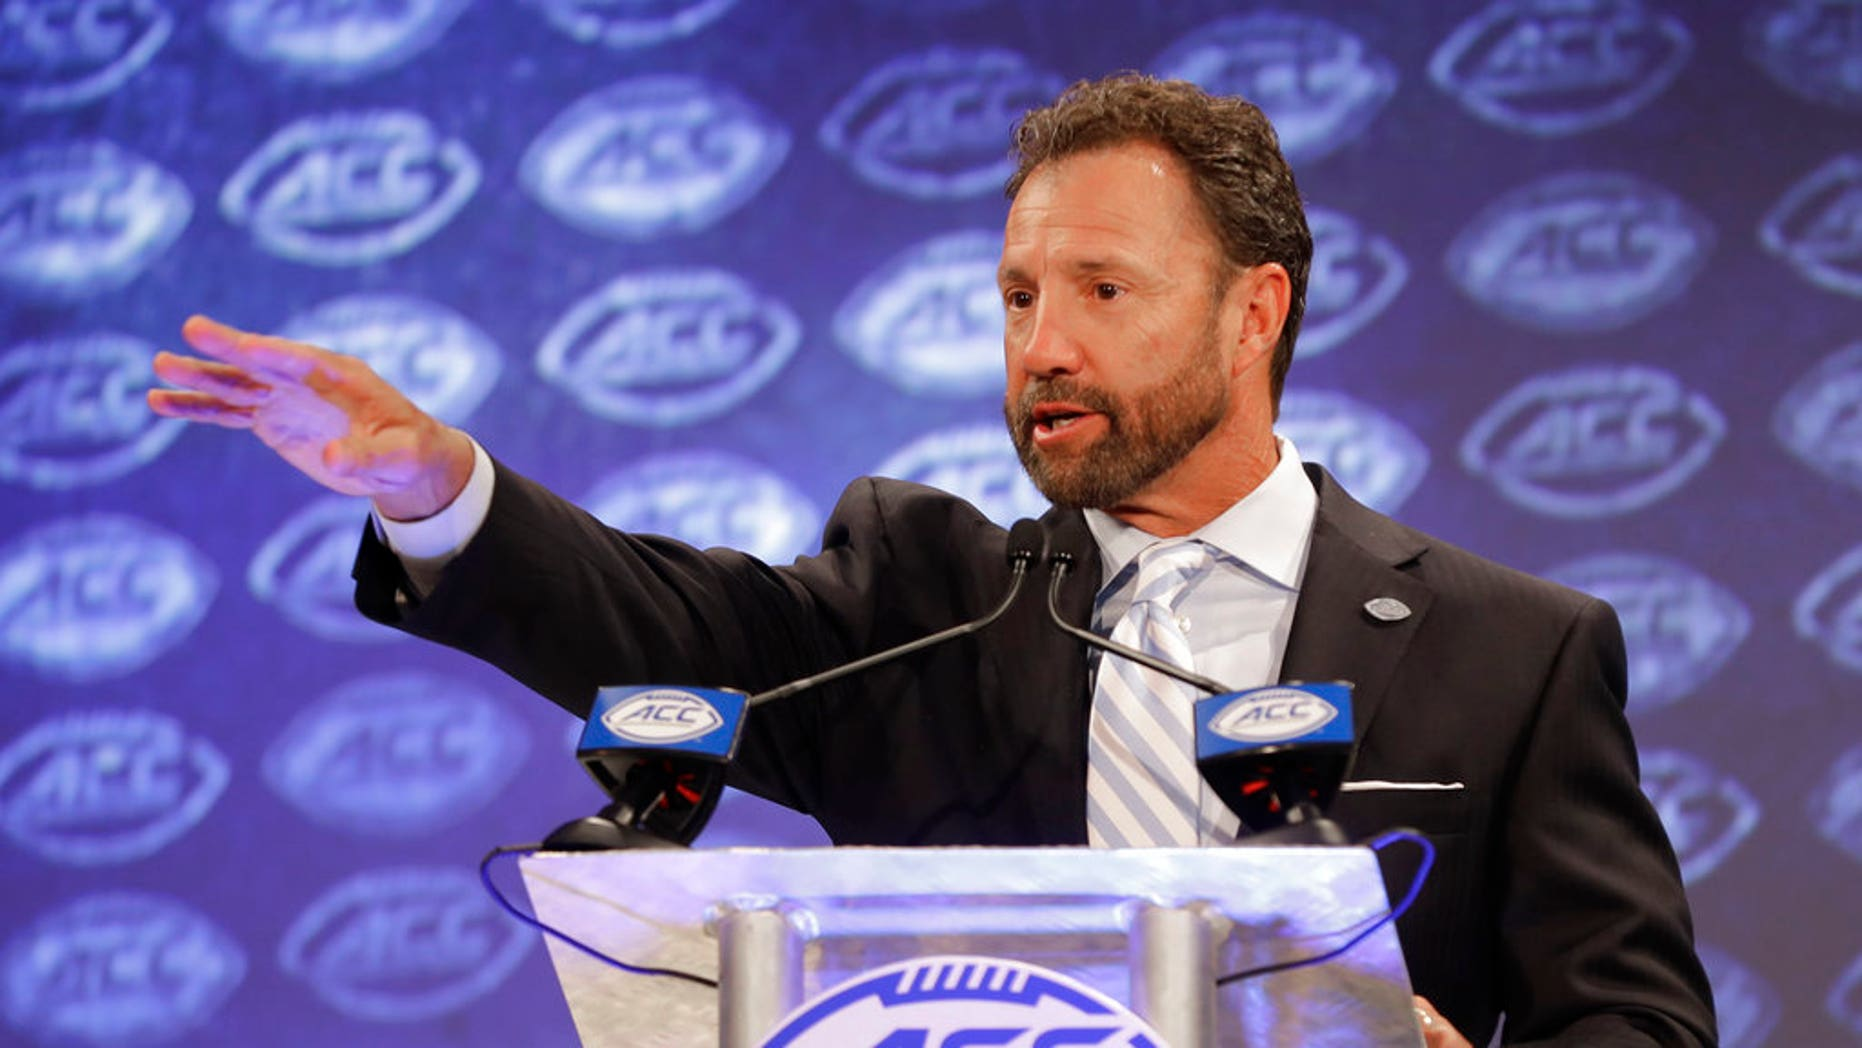 North Carolina head coach Larry Fedora answers a question during a news conference at the NCAA Atlantic Coast Conference college football media day in Charlotte, N.C., Wednesday, July 18, 2018.